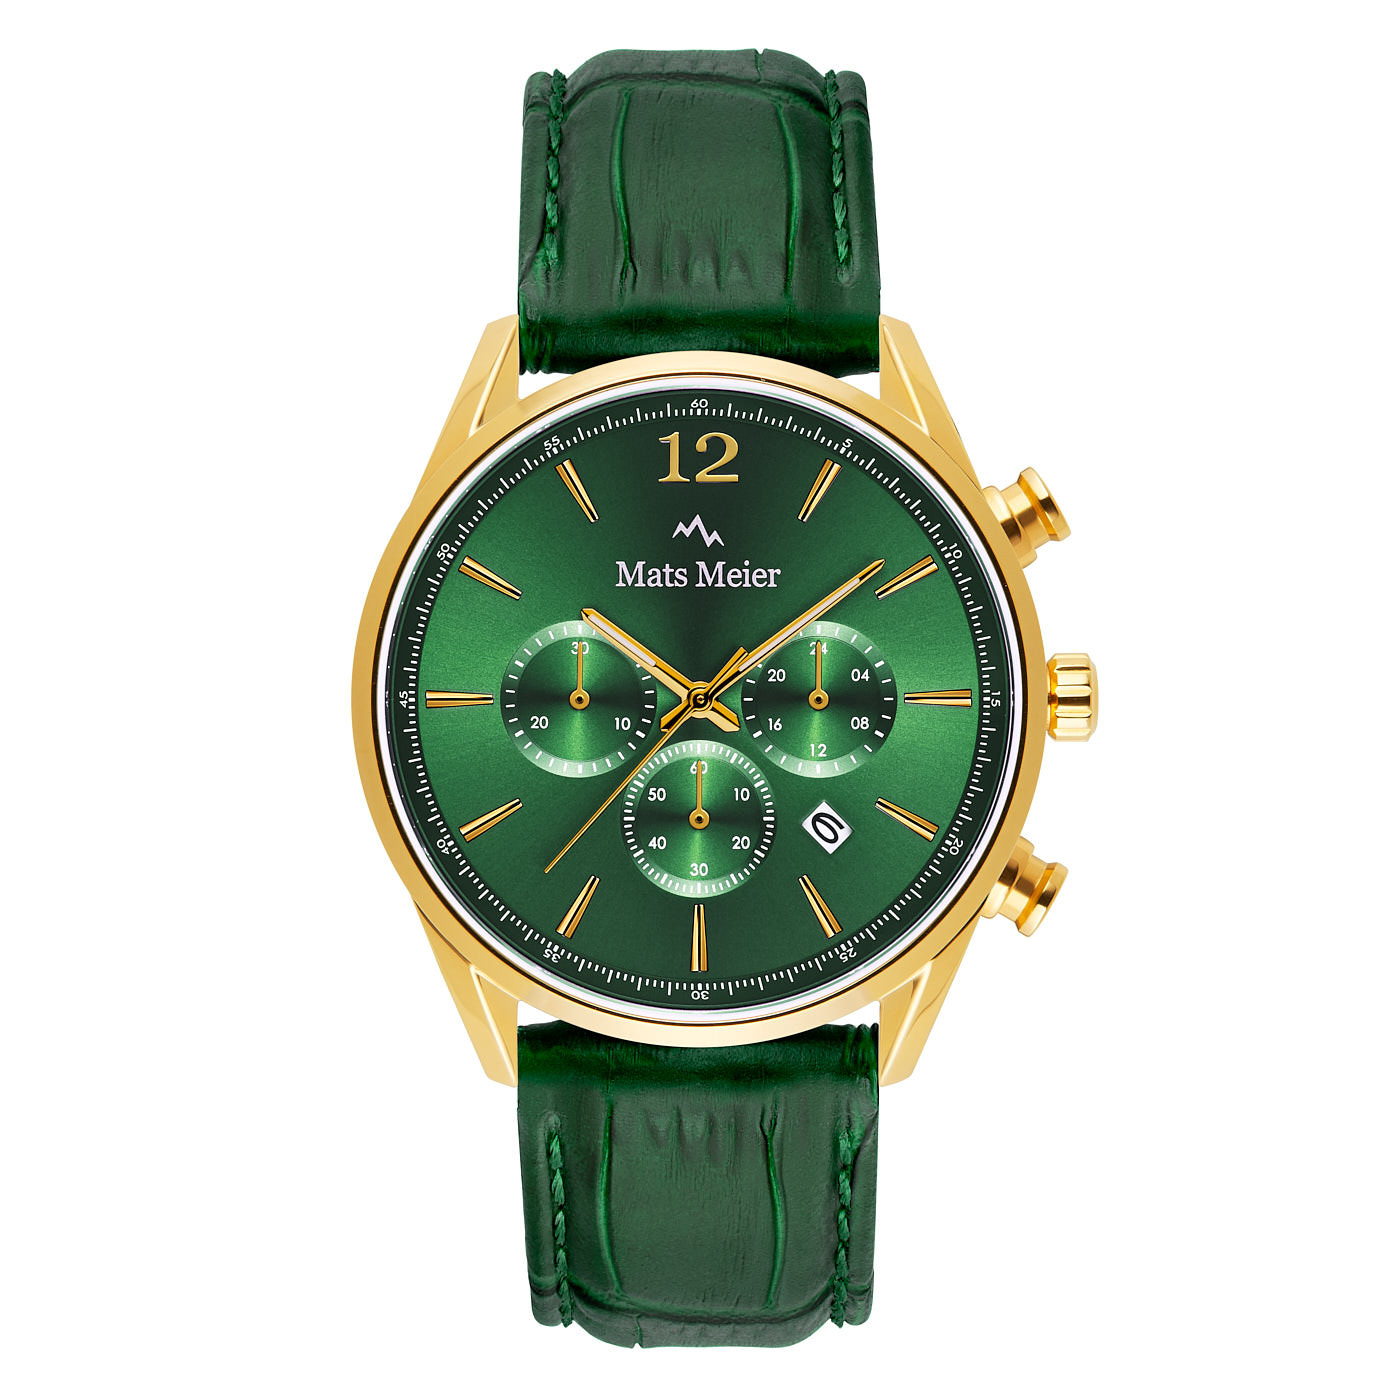 Mats Meier Grand Cornier montre chronographe vert / couleur or